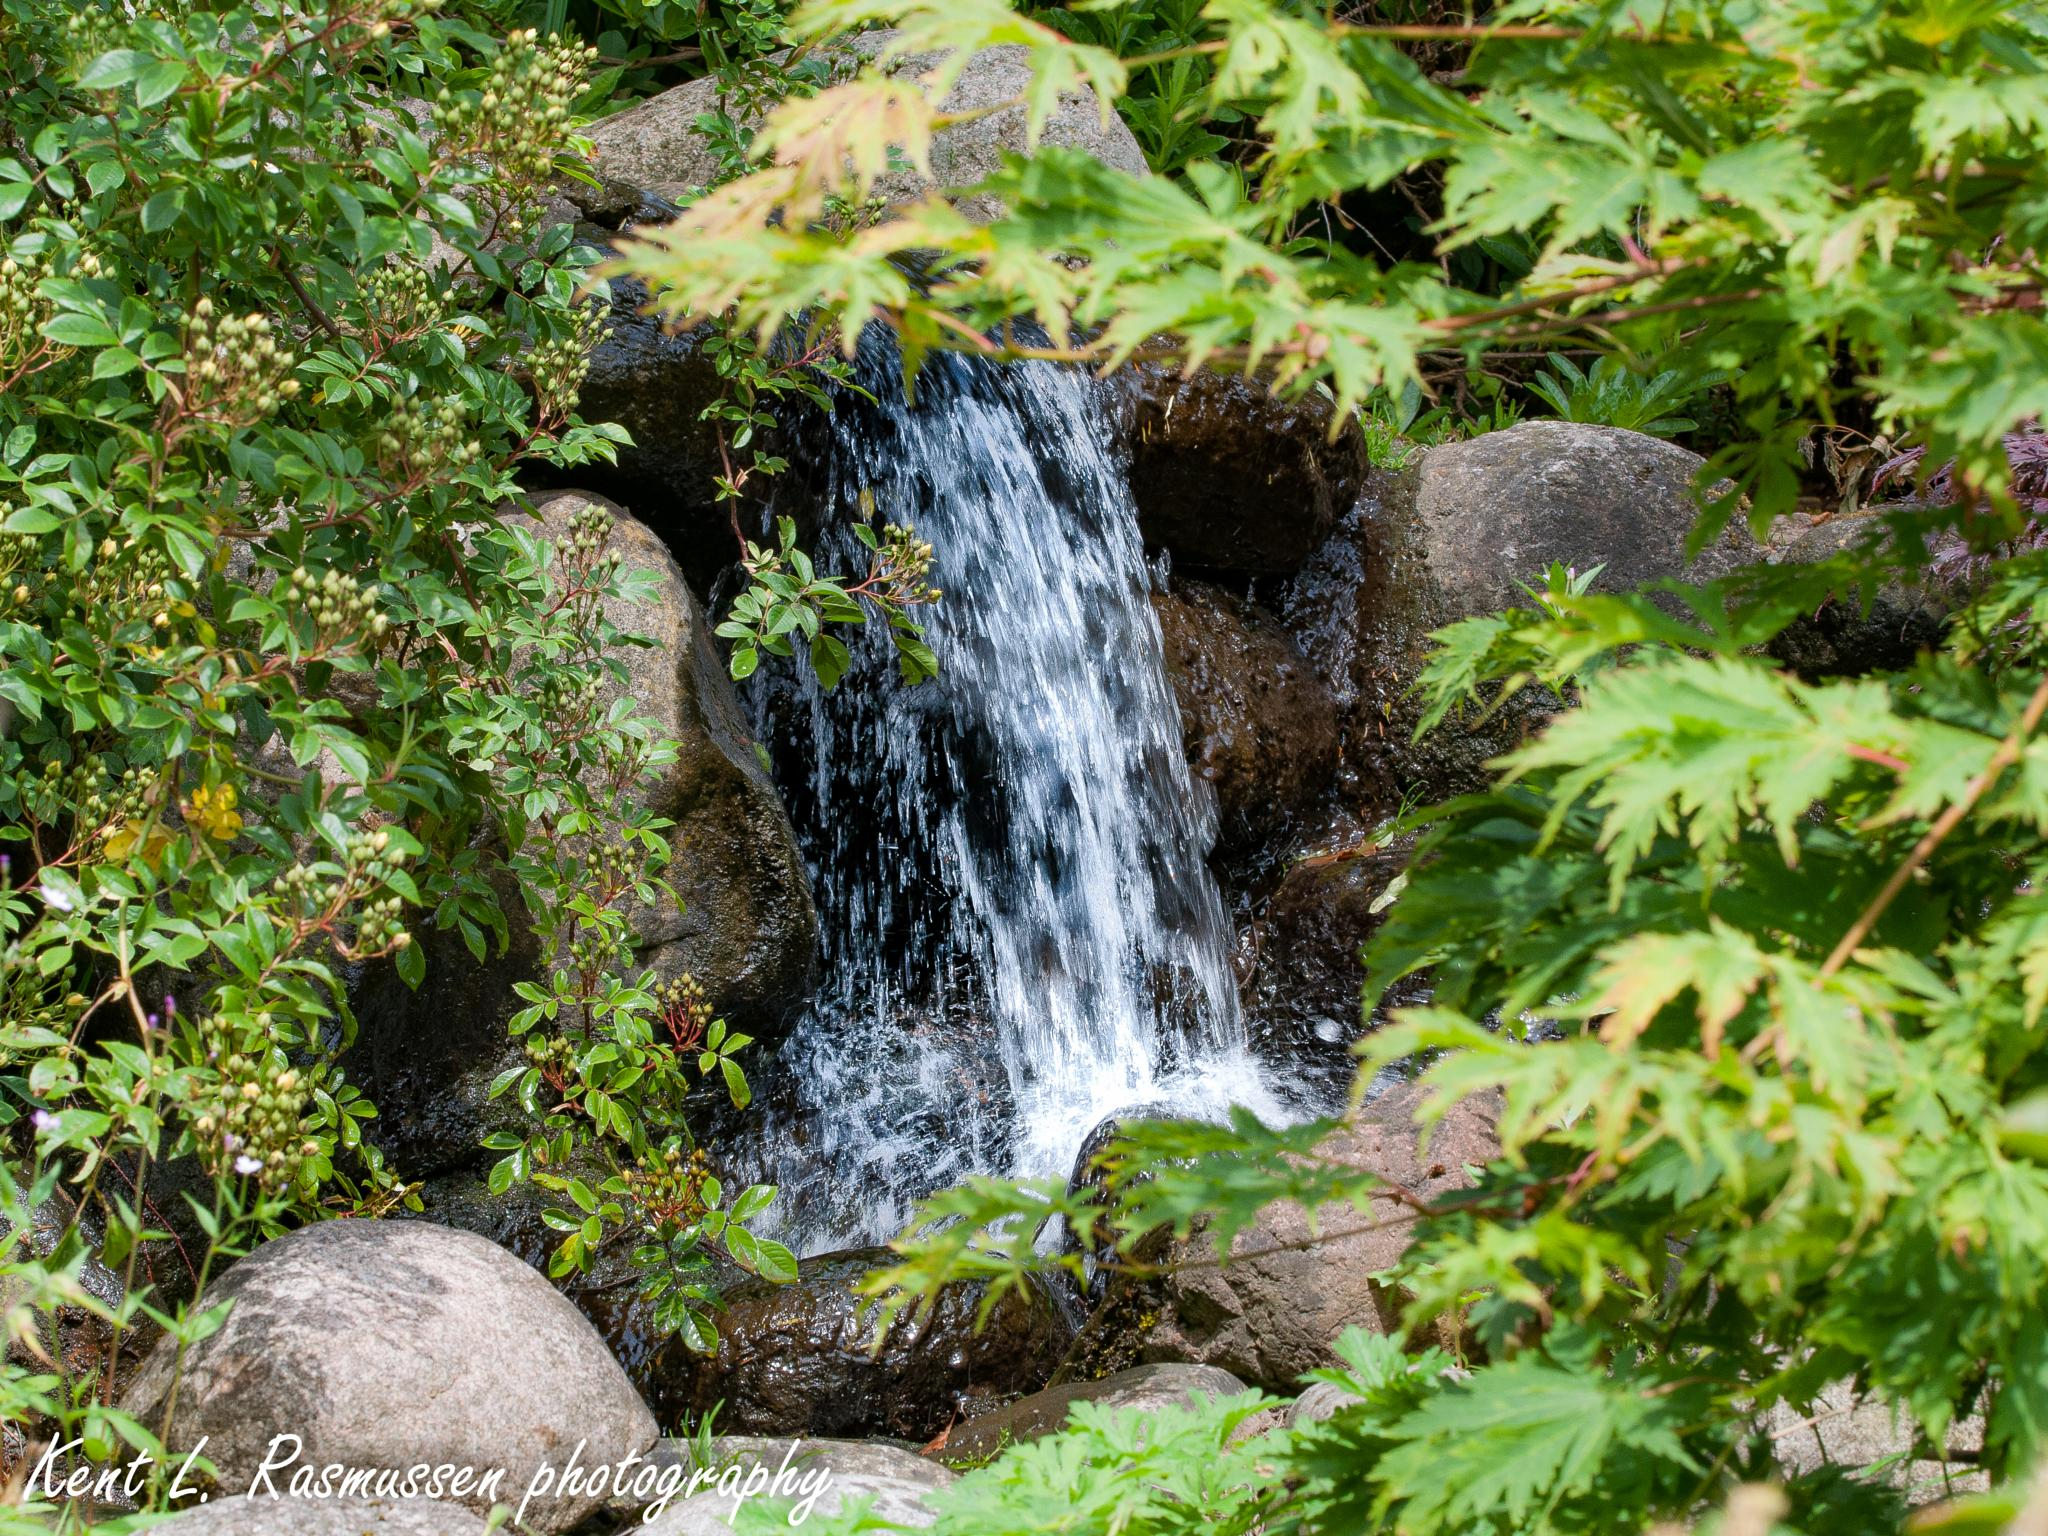 Small waterfall by Kent L. Rasmussen